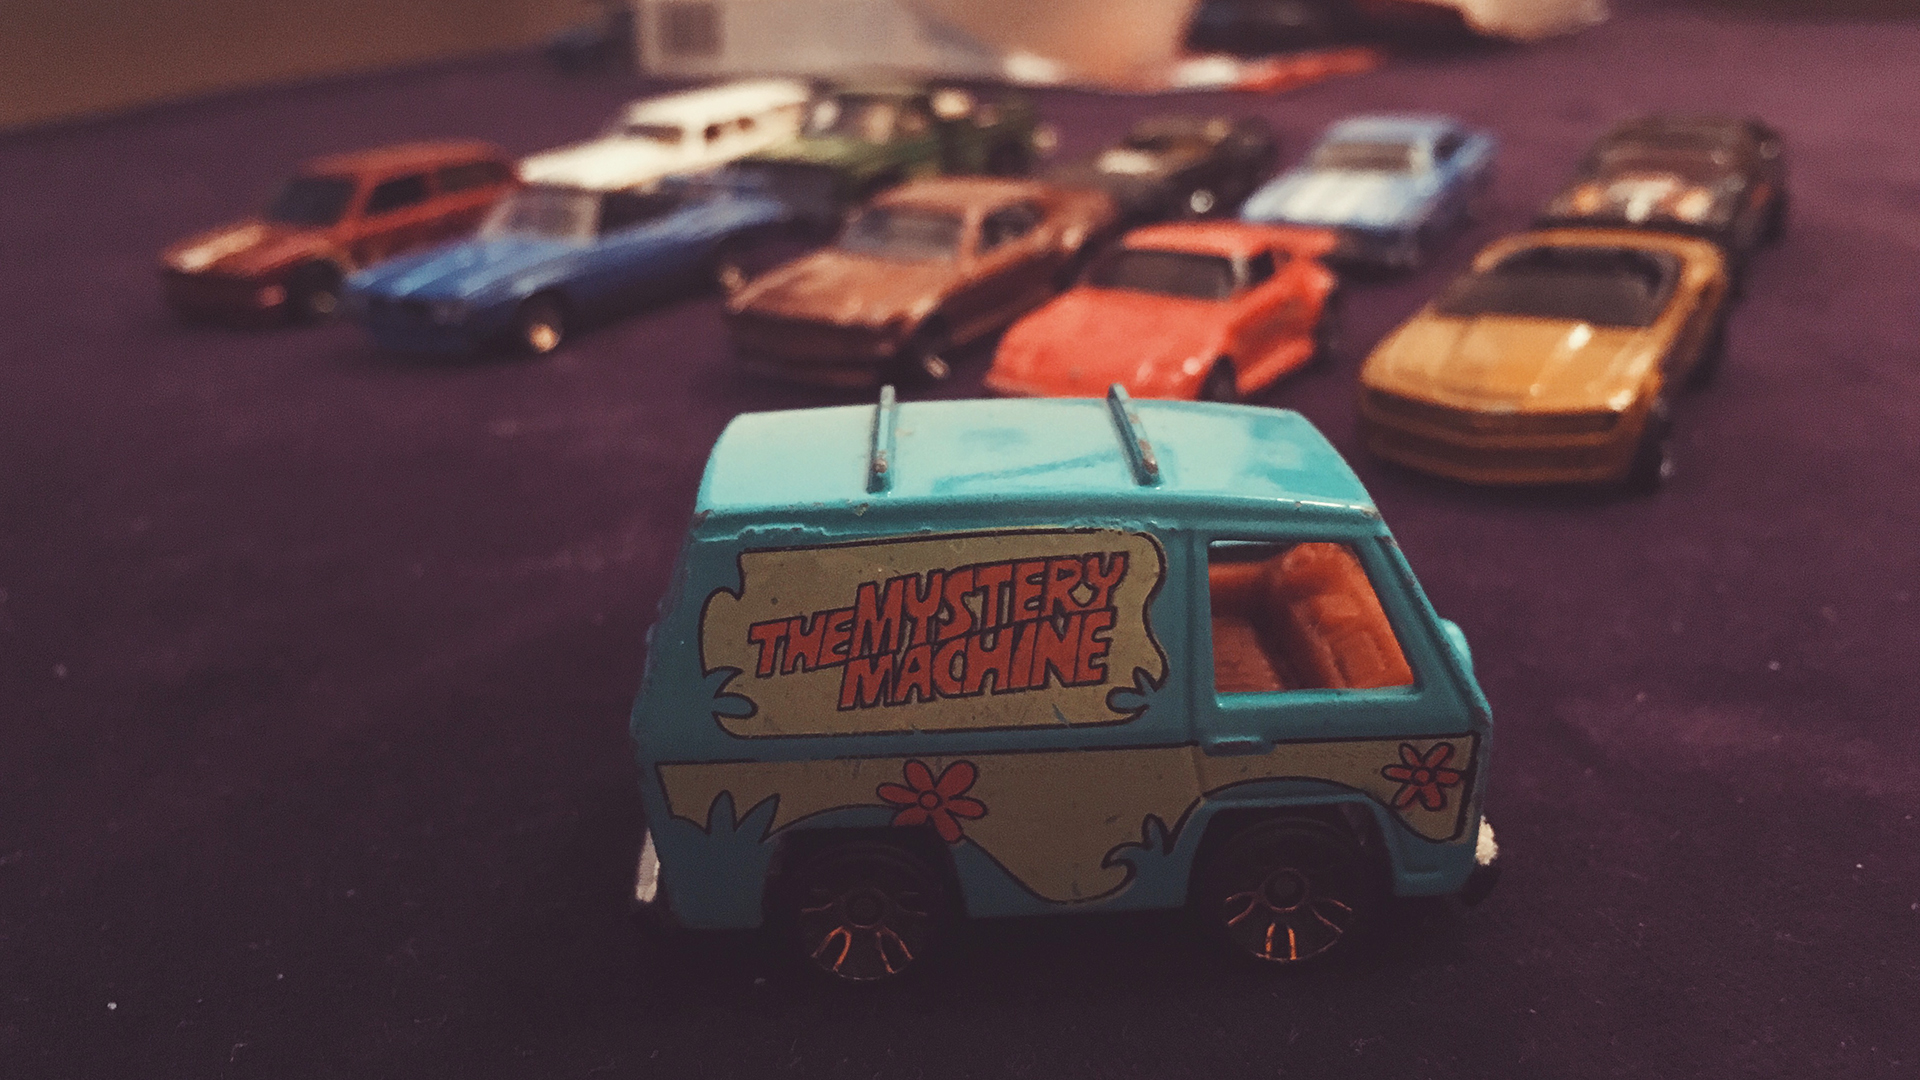 ... plenty more other terms like Tampo, Blackwalls, etc., so don't be  ignorant, check out this link to know the basics and slang of a Hot Wheels  Collector.